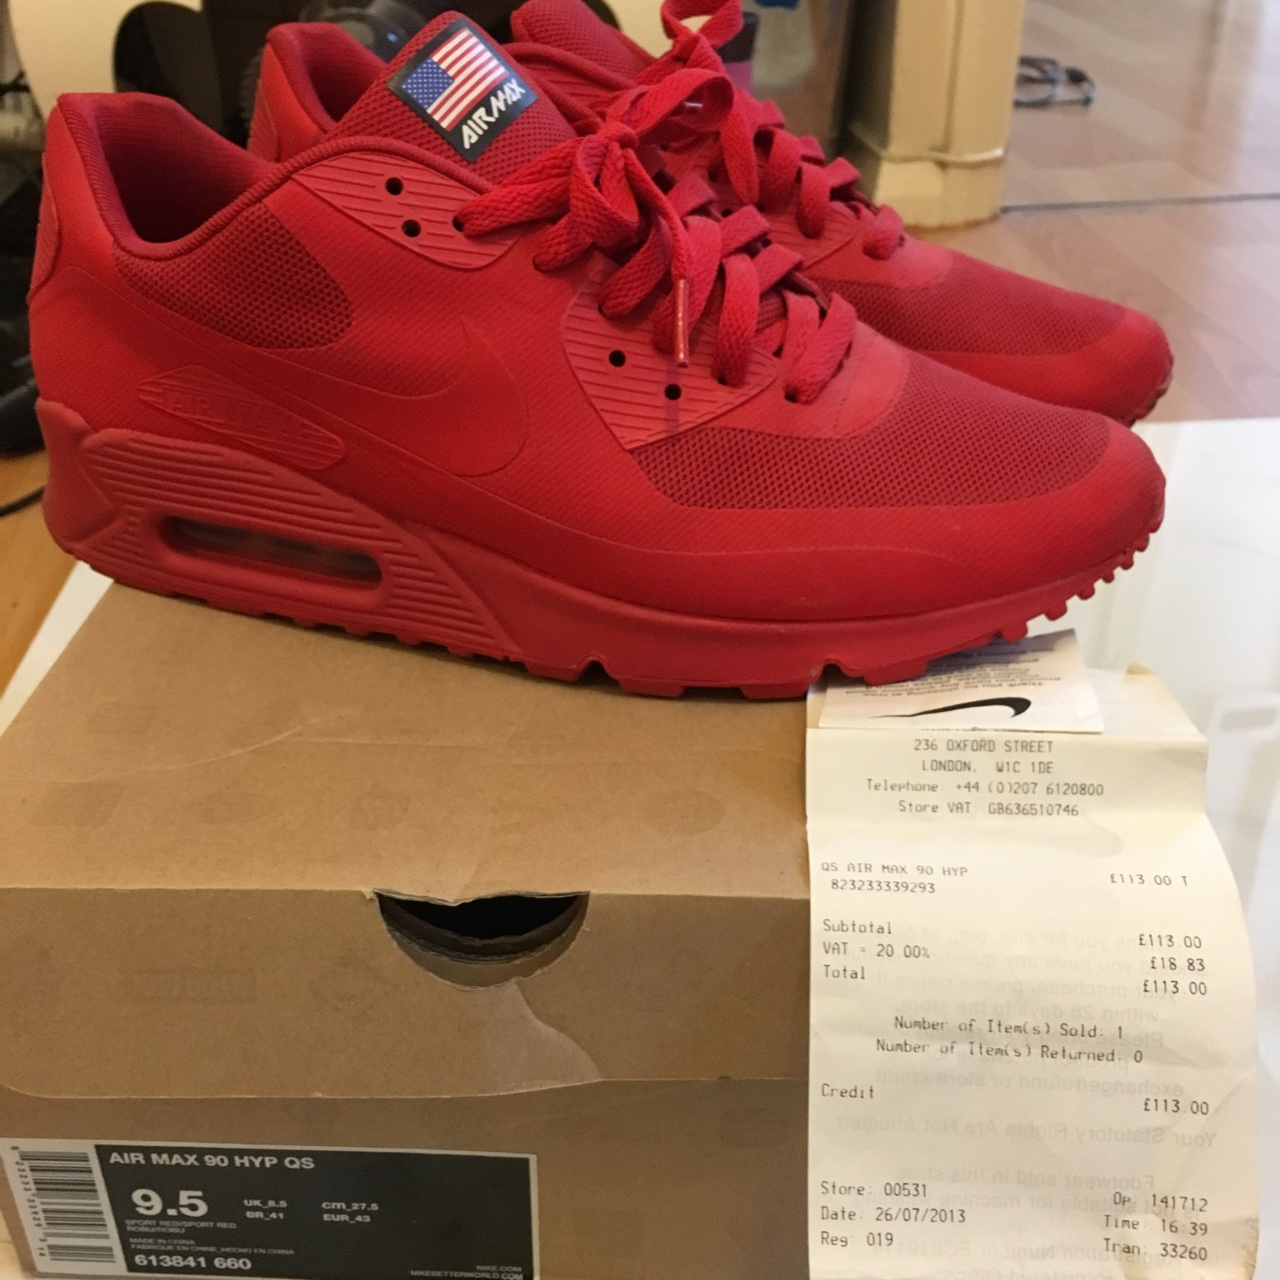 AIR MAX 90 HYPERFUSE 'INDEPENDENCE DAY' RED. Depop